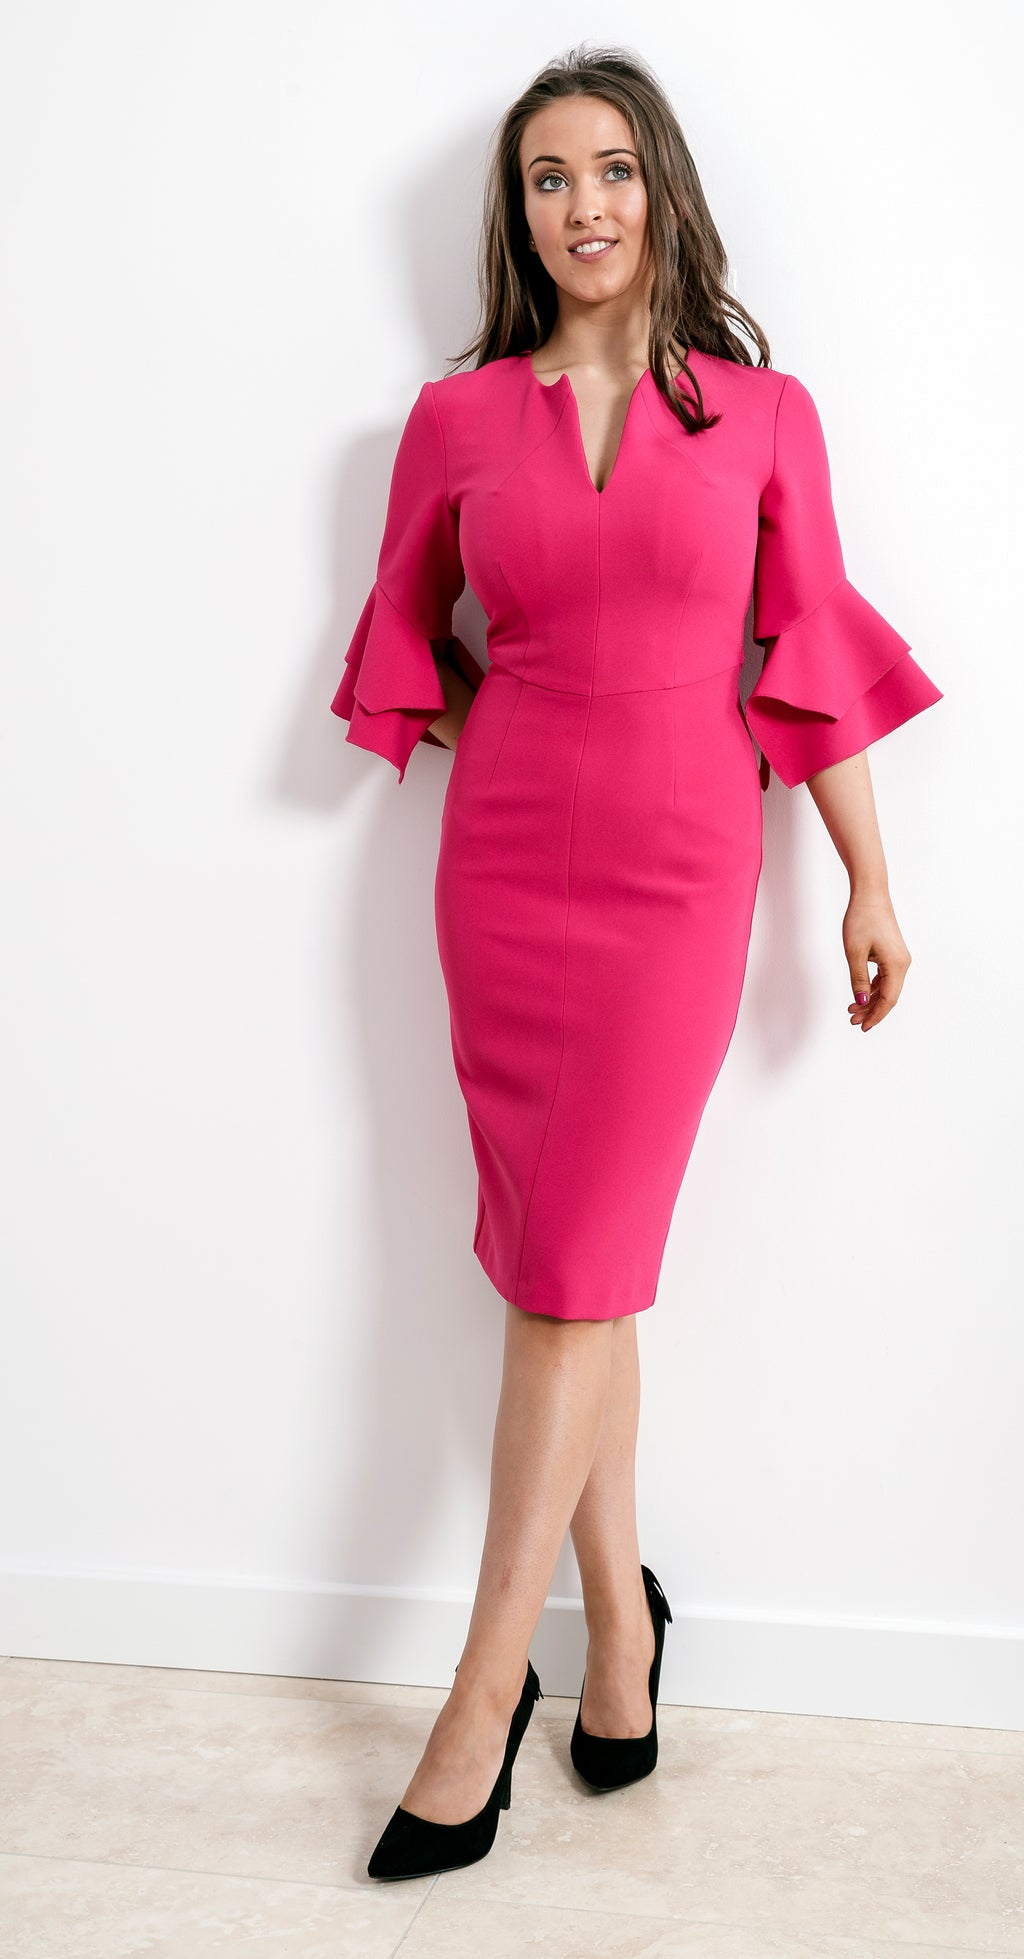 Susan Dress DRC318 Pink Crepe